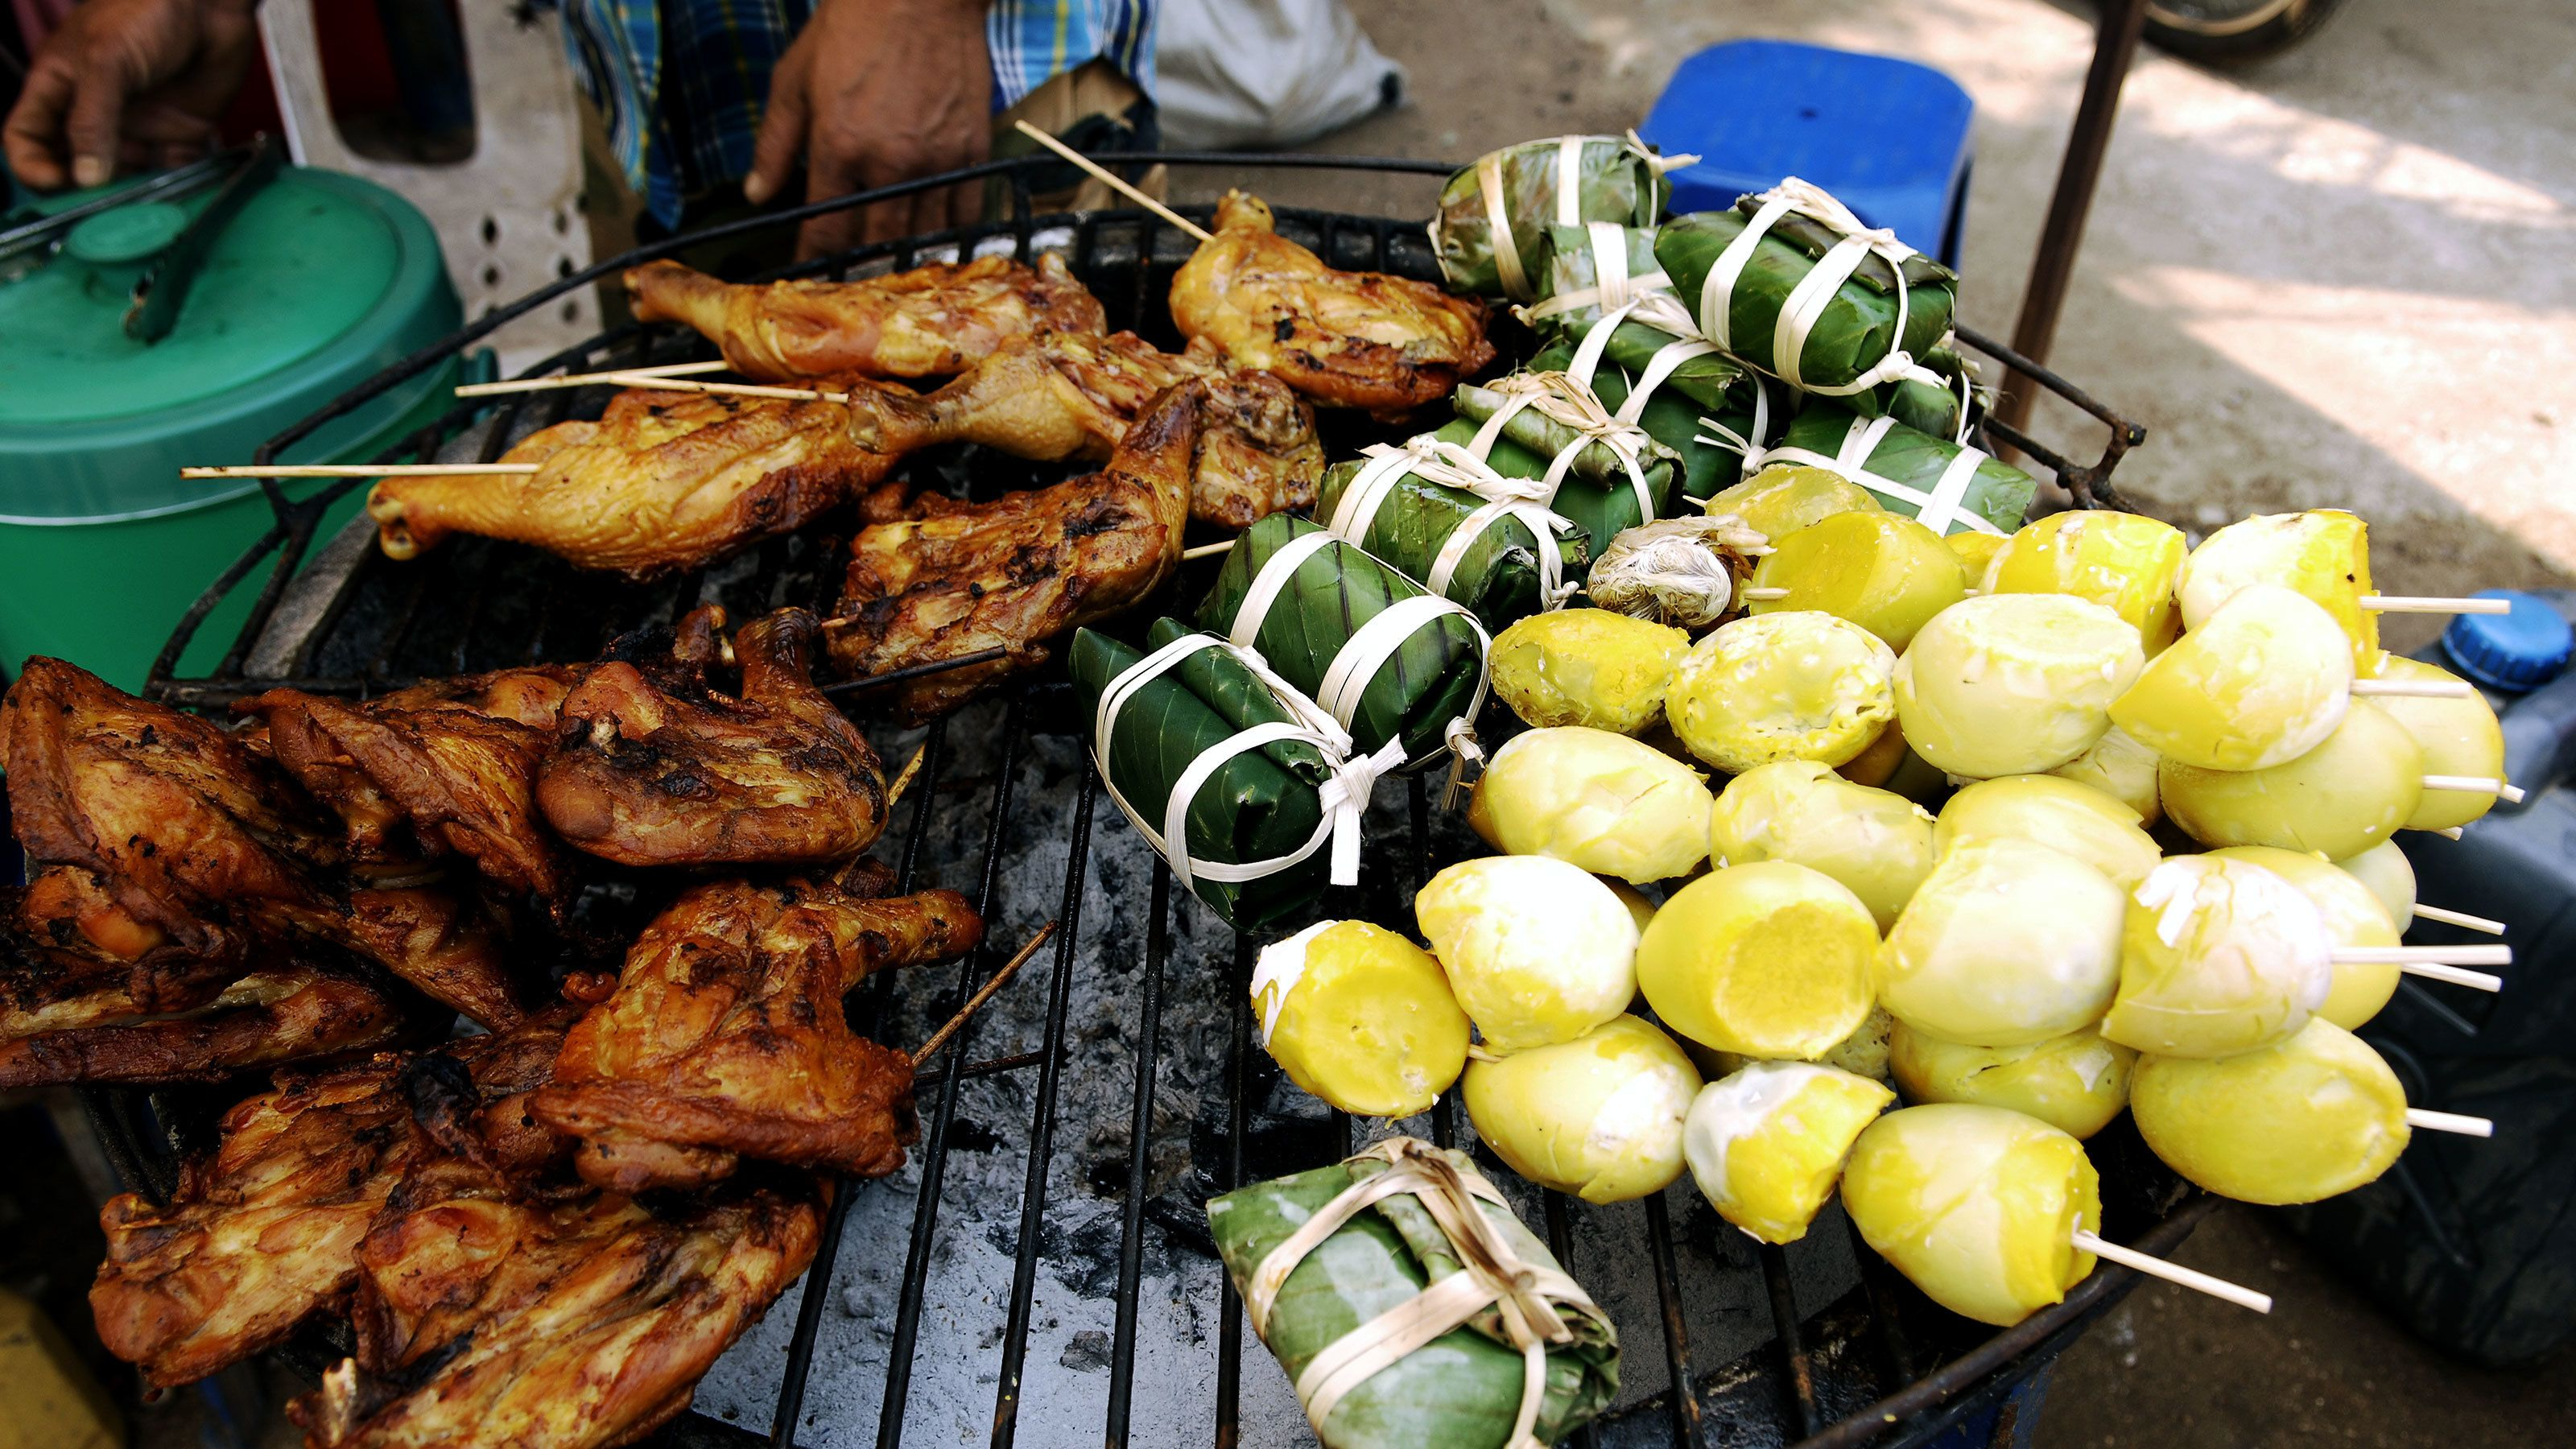 Grilling chicken and vegetables at the market in Bangkok